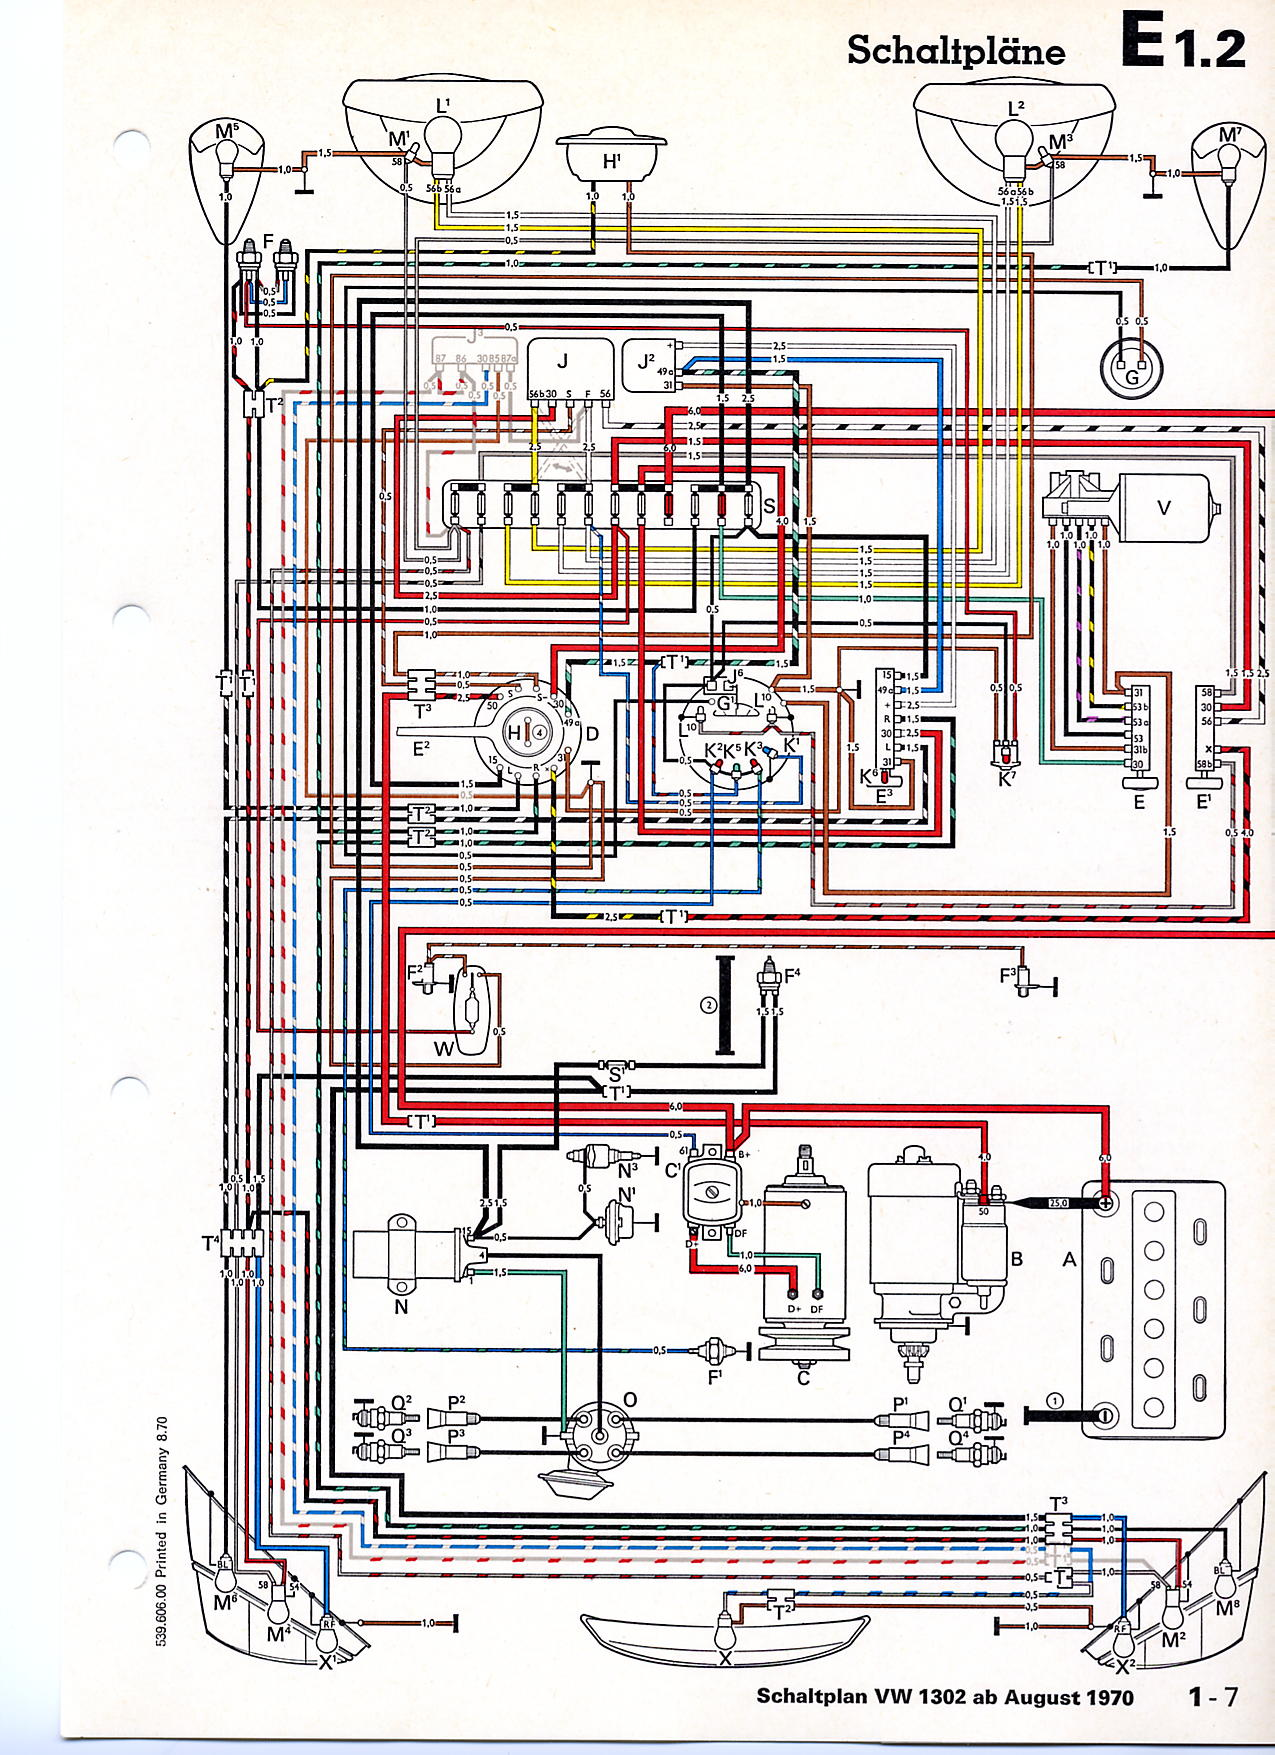 1302_from_August_1970_without_test_central_socket thesamba com beetle late model super 1968 up view topic vw bus samba wiring diagram at bayanpartner.co